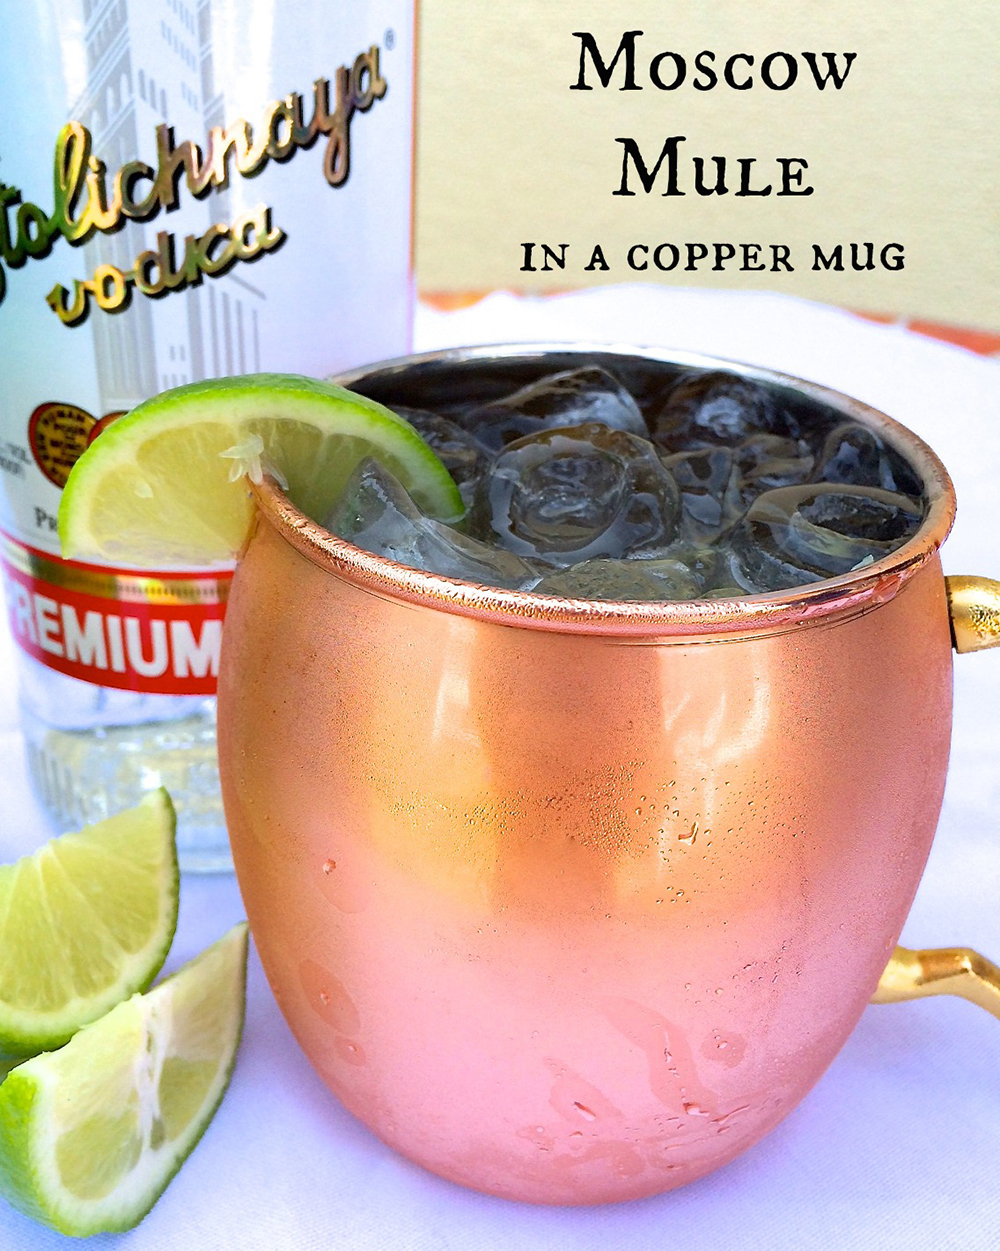 2 mule in mug labeled